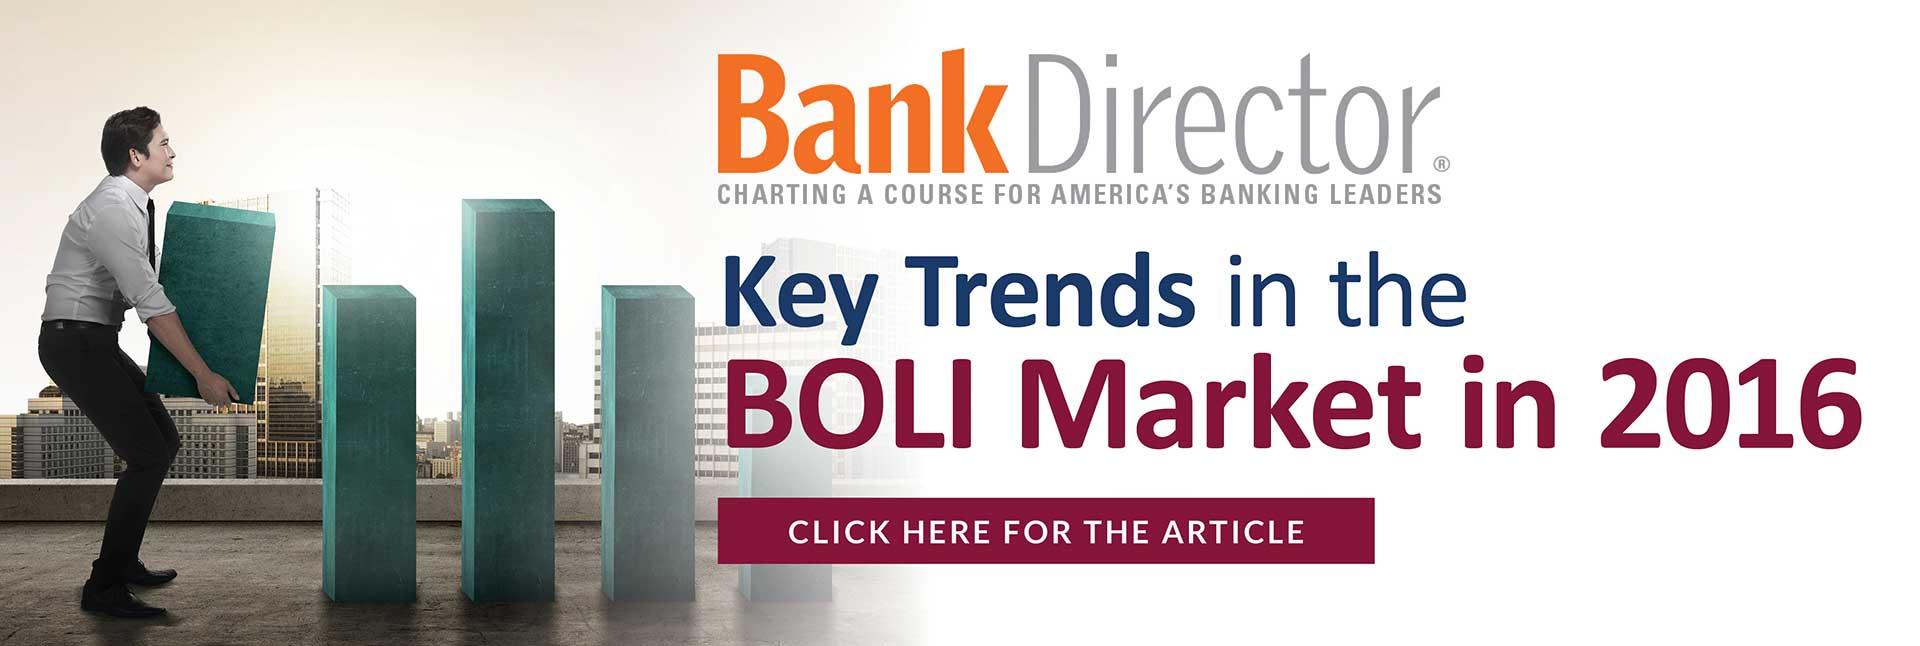 Bank Director - Key Trends in the BOLI Market in 2016